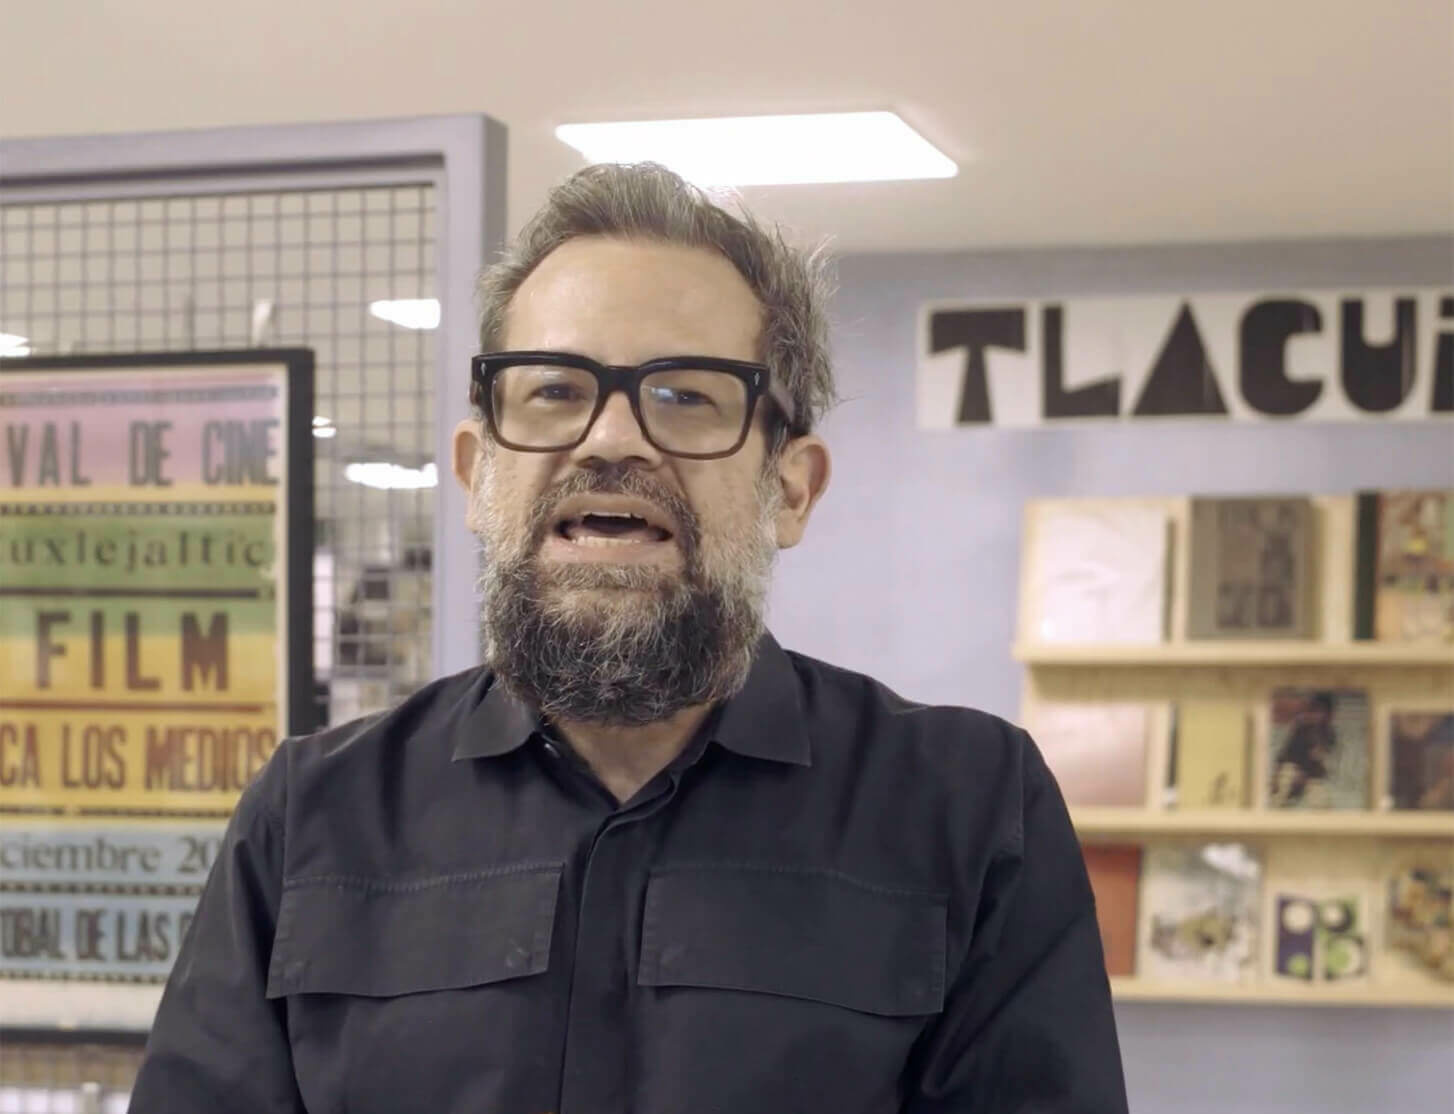 Pedro Reyes opens TLACUILO, Mexico's first art-lending library